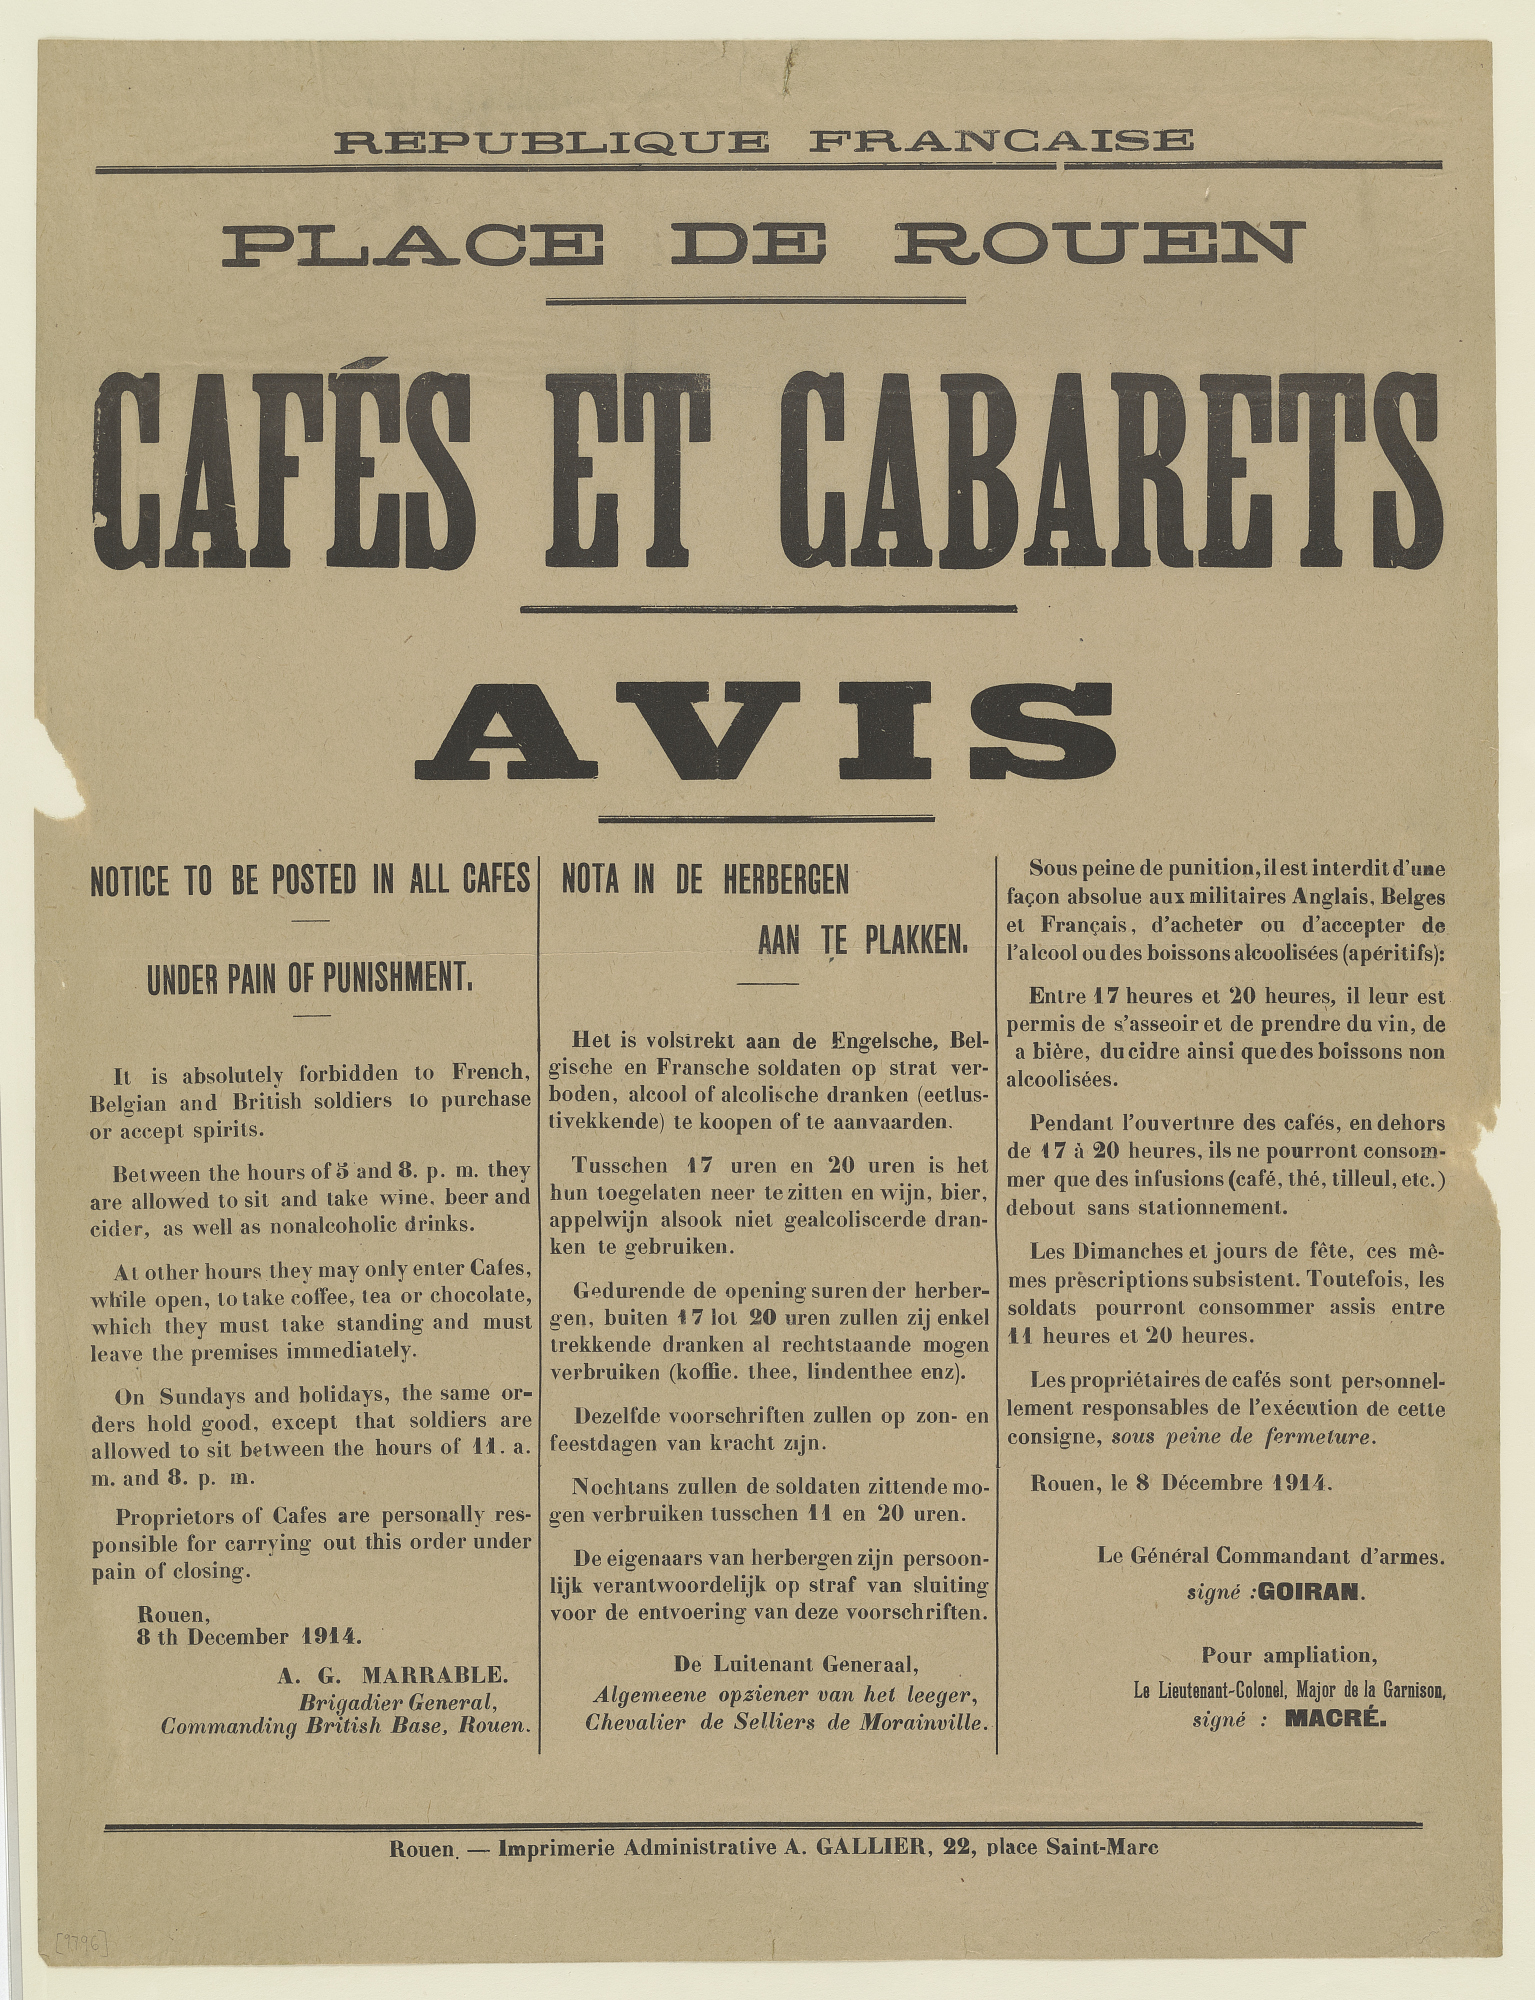 PLACE DE ROUEN CAFÉS ET CABARETS AVIS ... It is absolutely forbidden to French, Belgian and British soldiers to purchase or accept spirits...